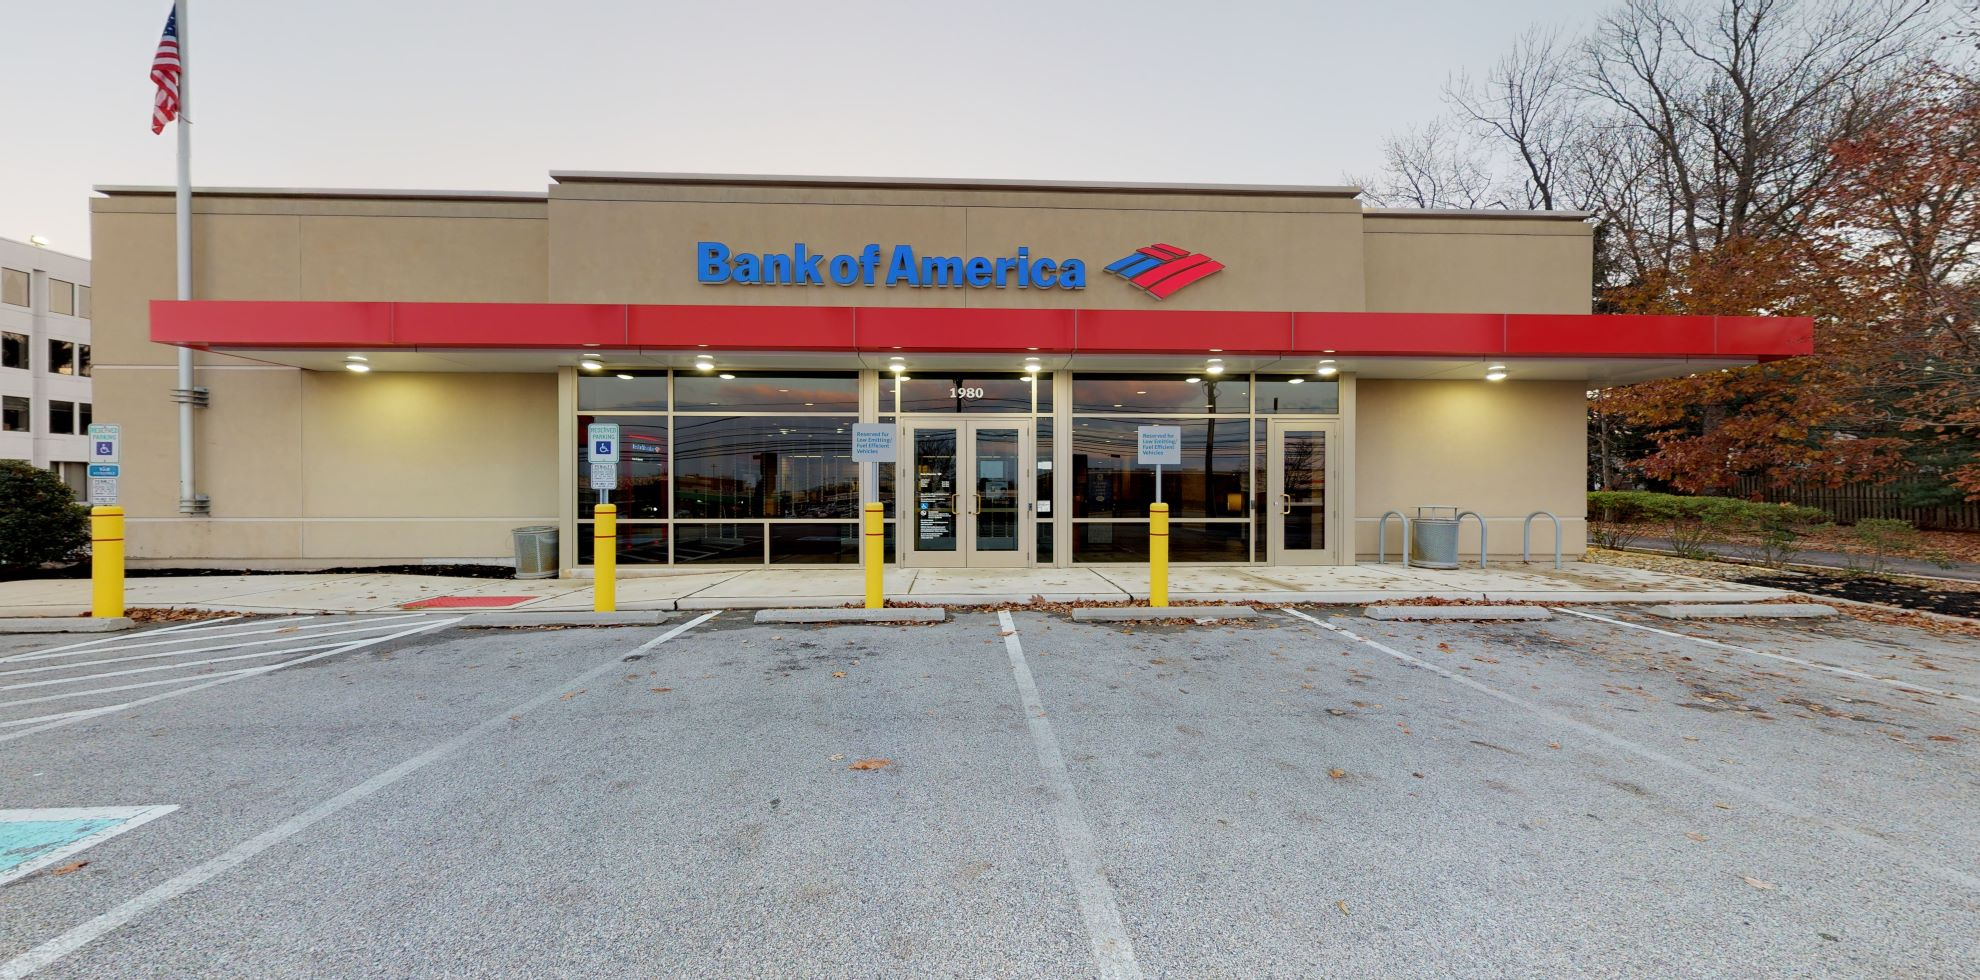 Bank of America financial center with drive-thru ATM | 1980 Sproul Rd, Broomall, PA 19008